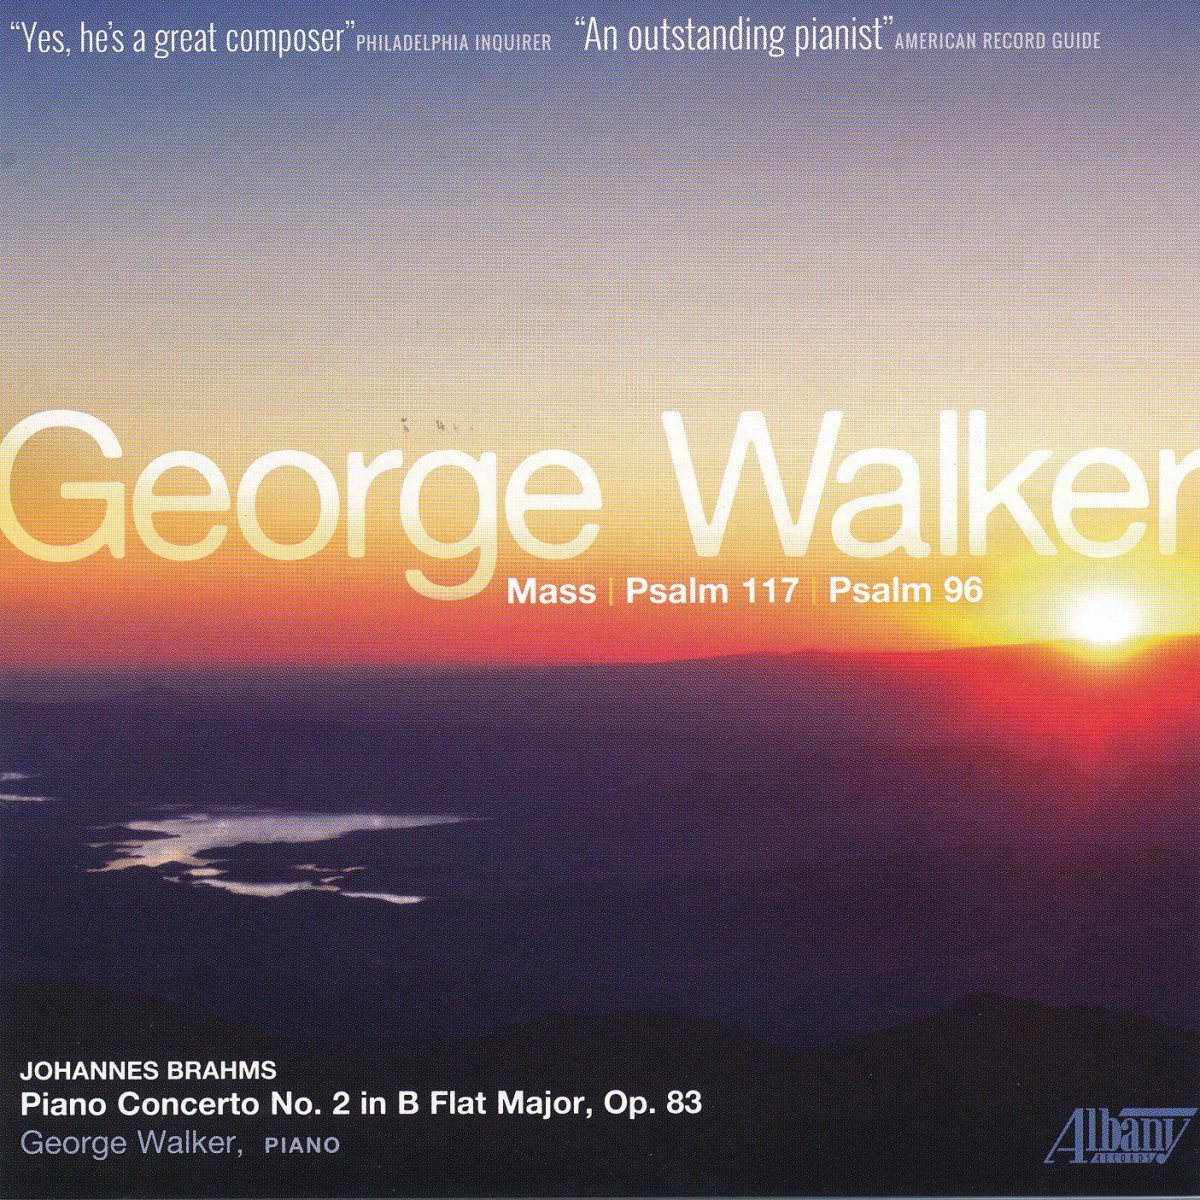 Hurricane Images Inc CD cover for Pulitzer Prize Winner George Walker